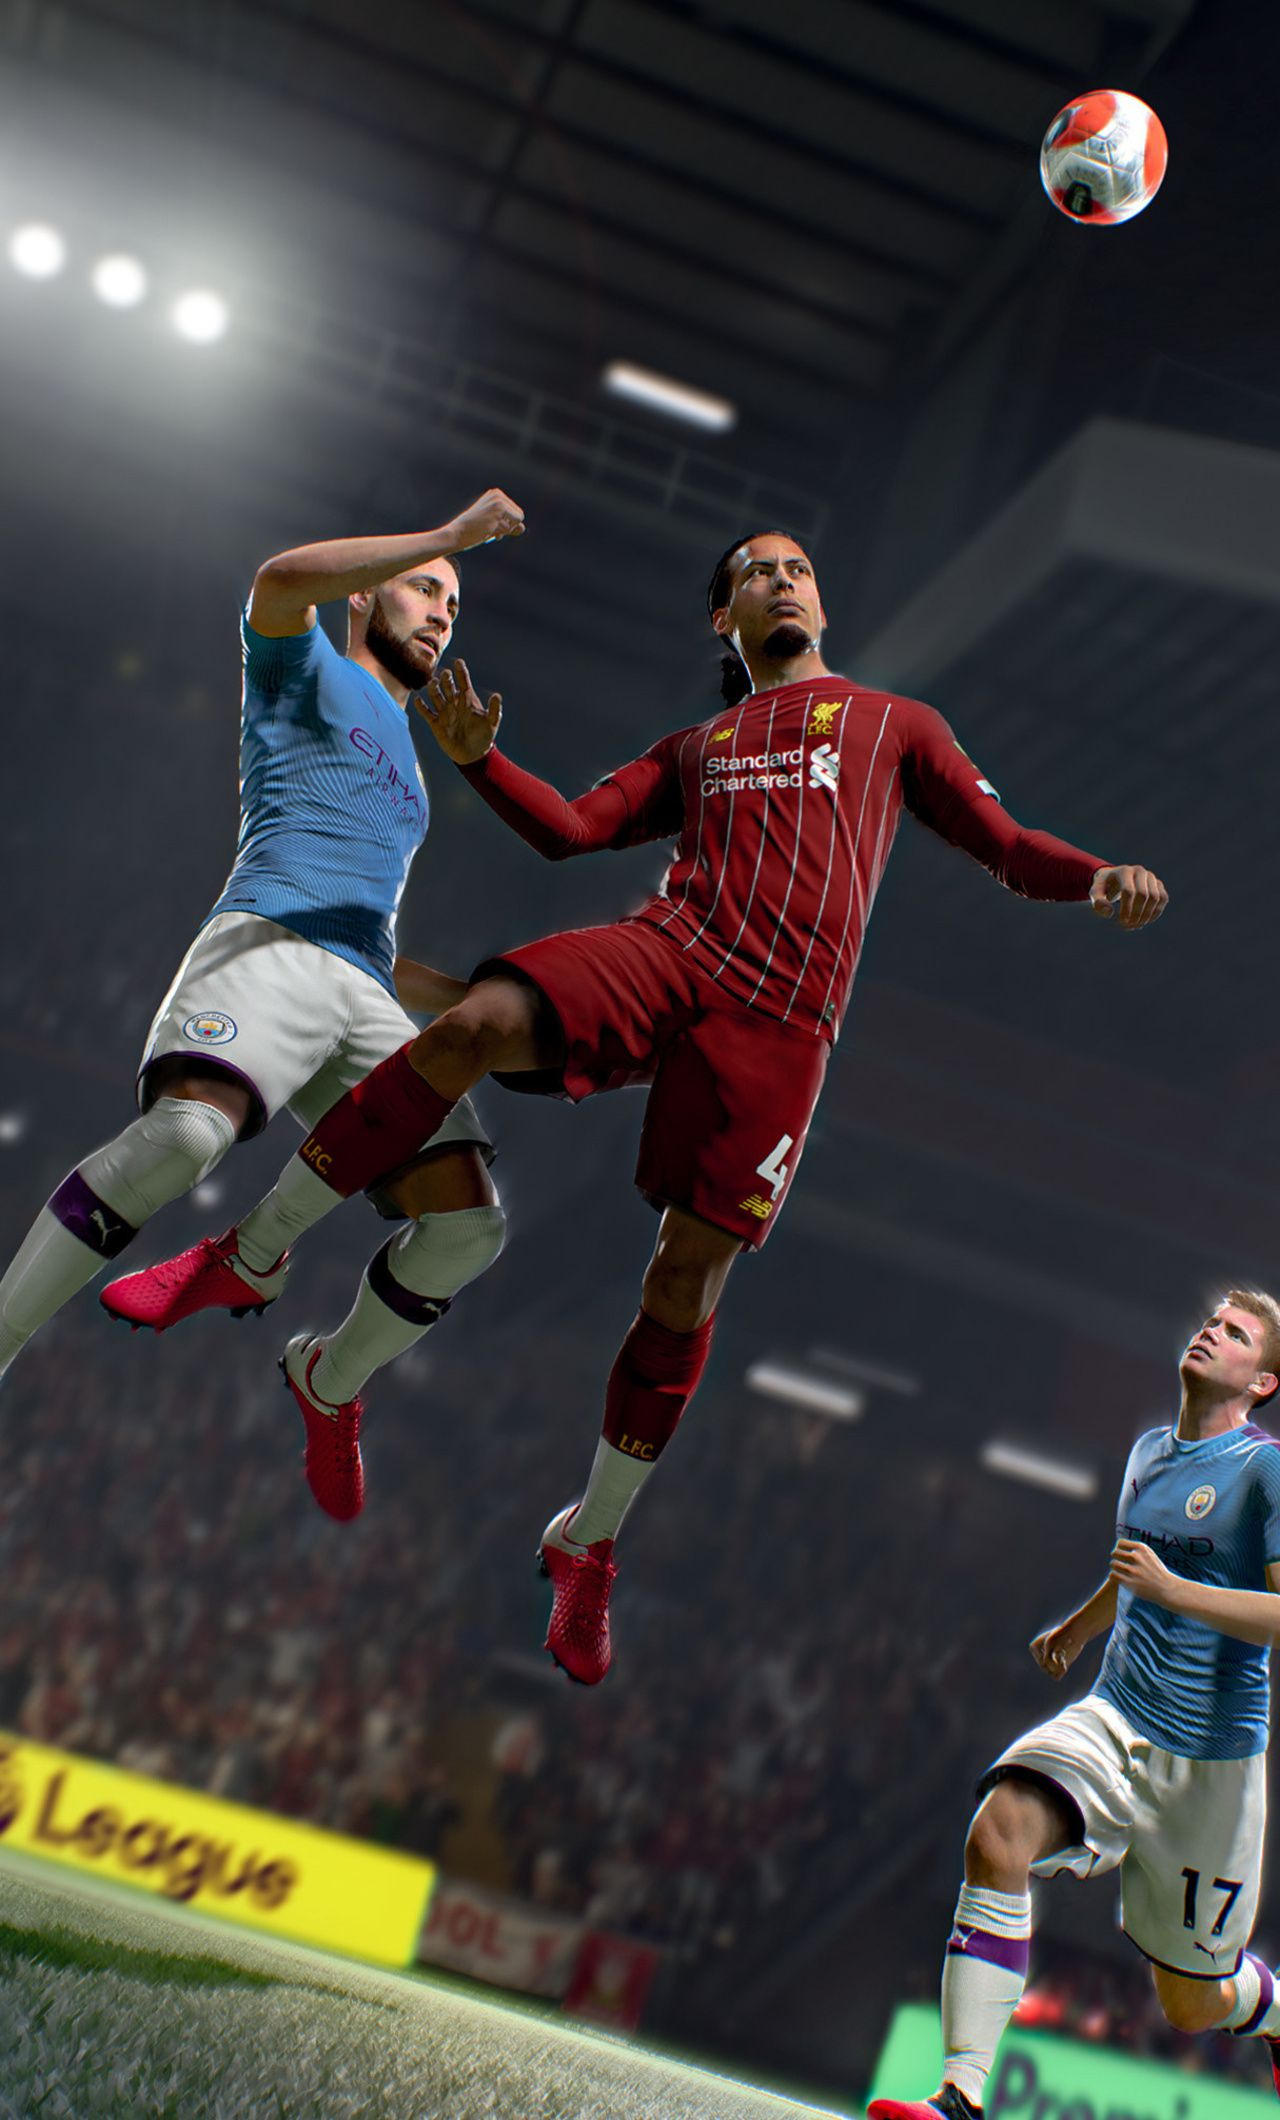 FIFA 21 Game Wallpapers 1280x2120